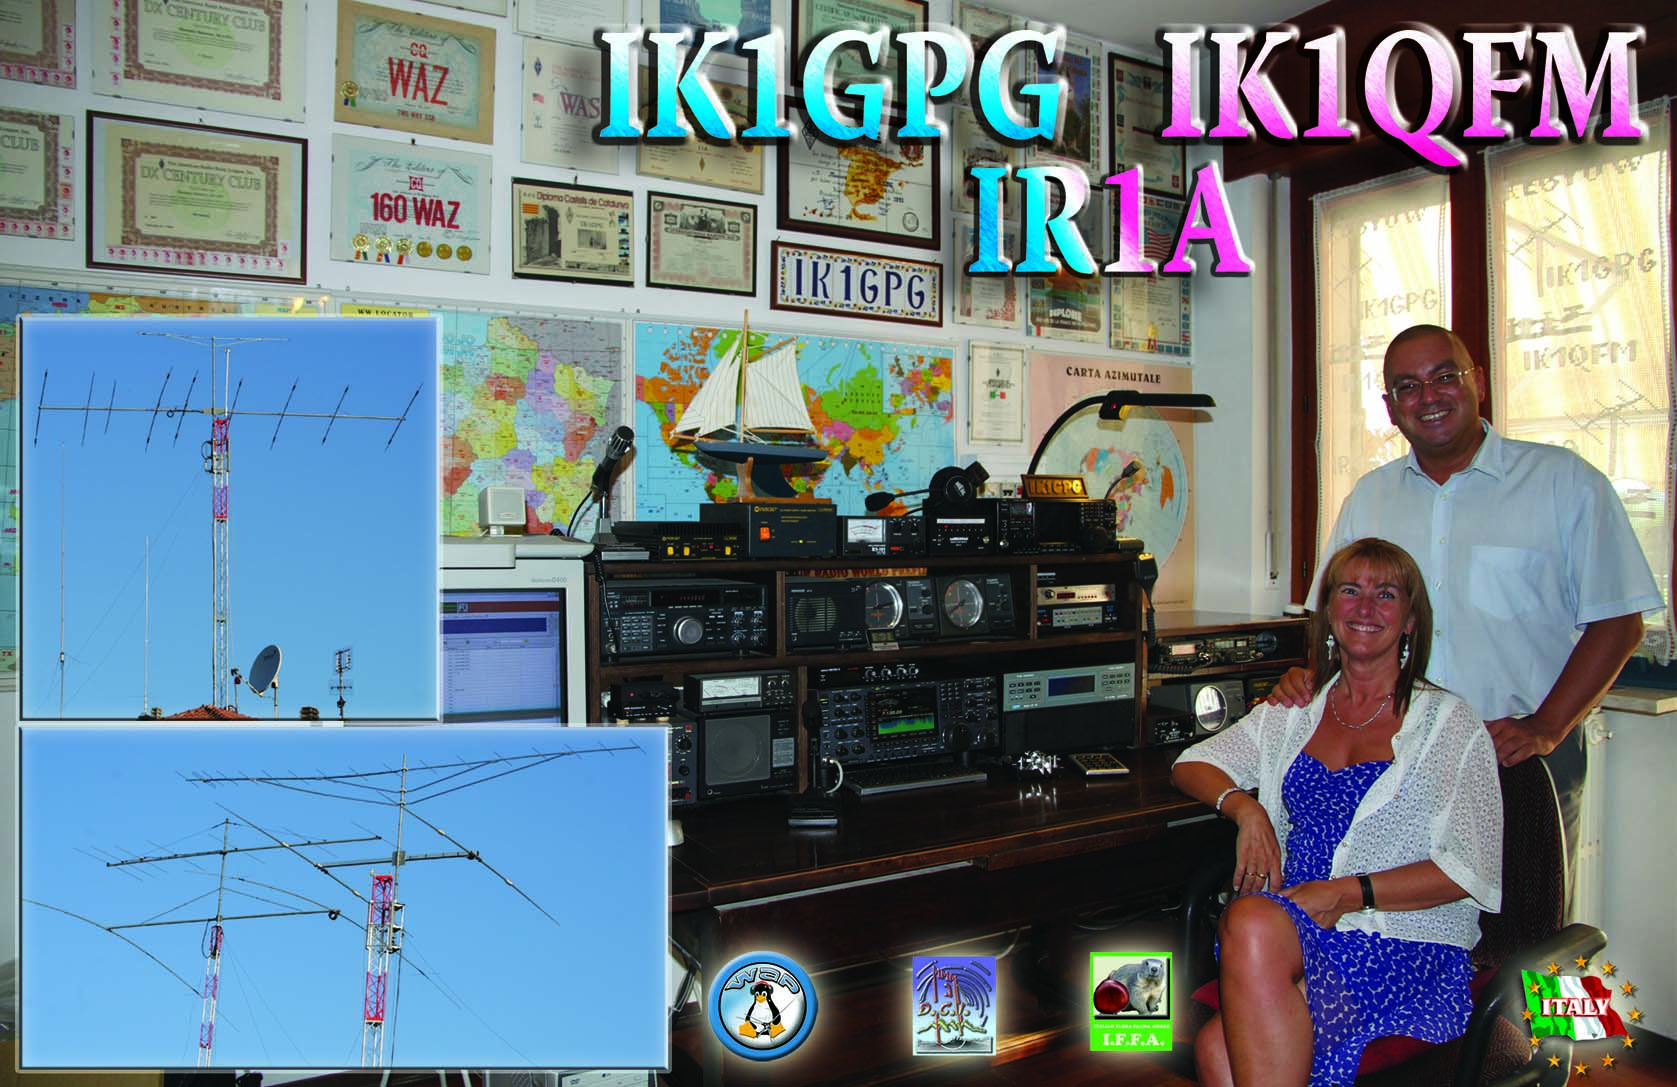 QSL image for IK1GPG